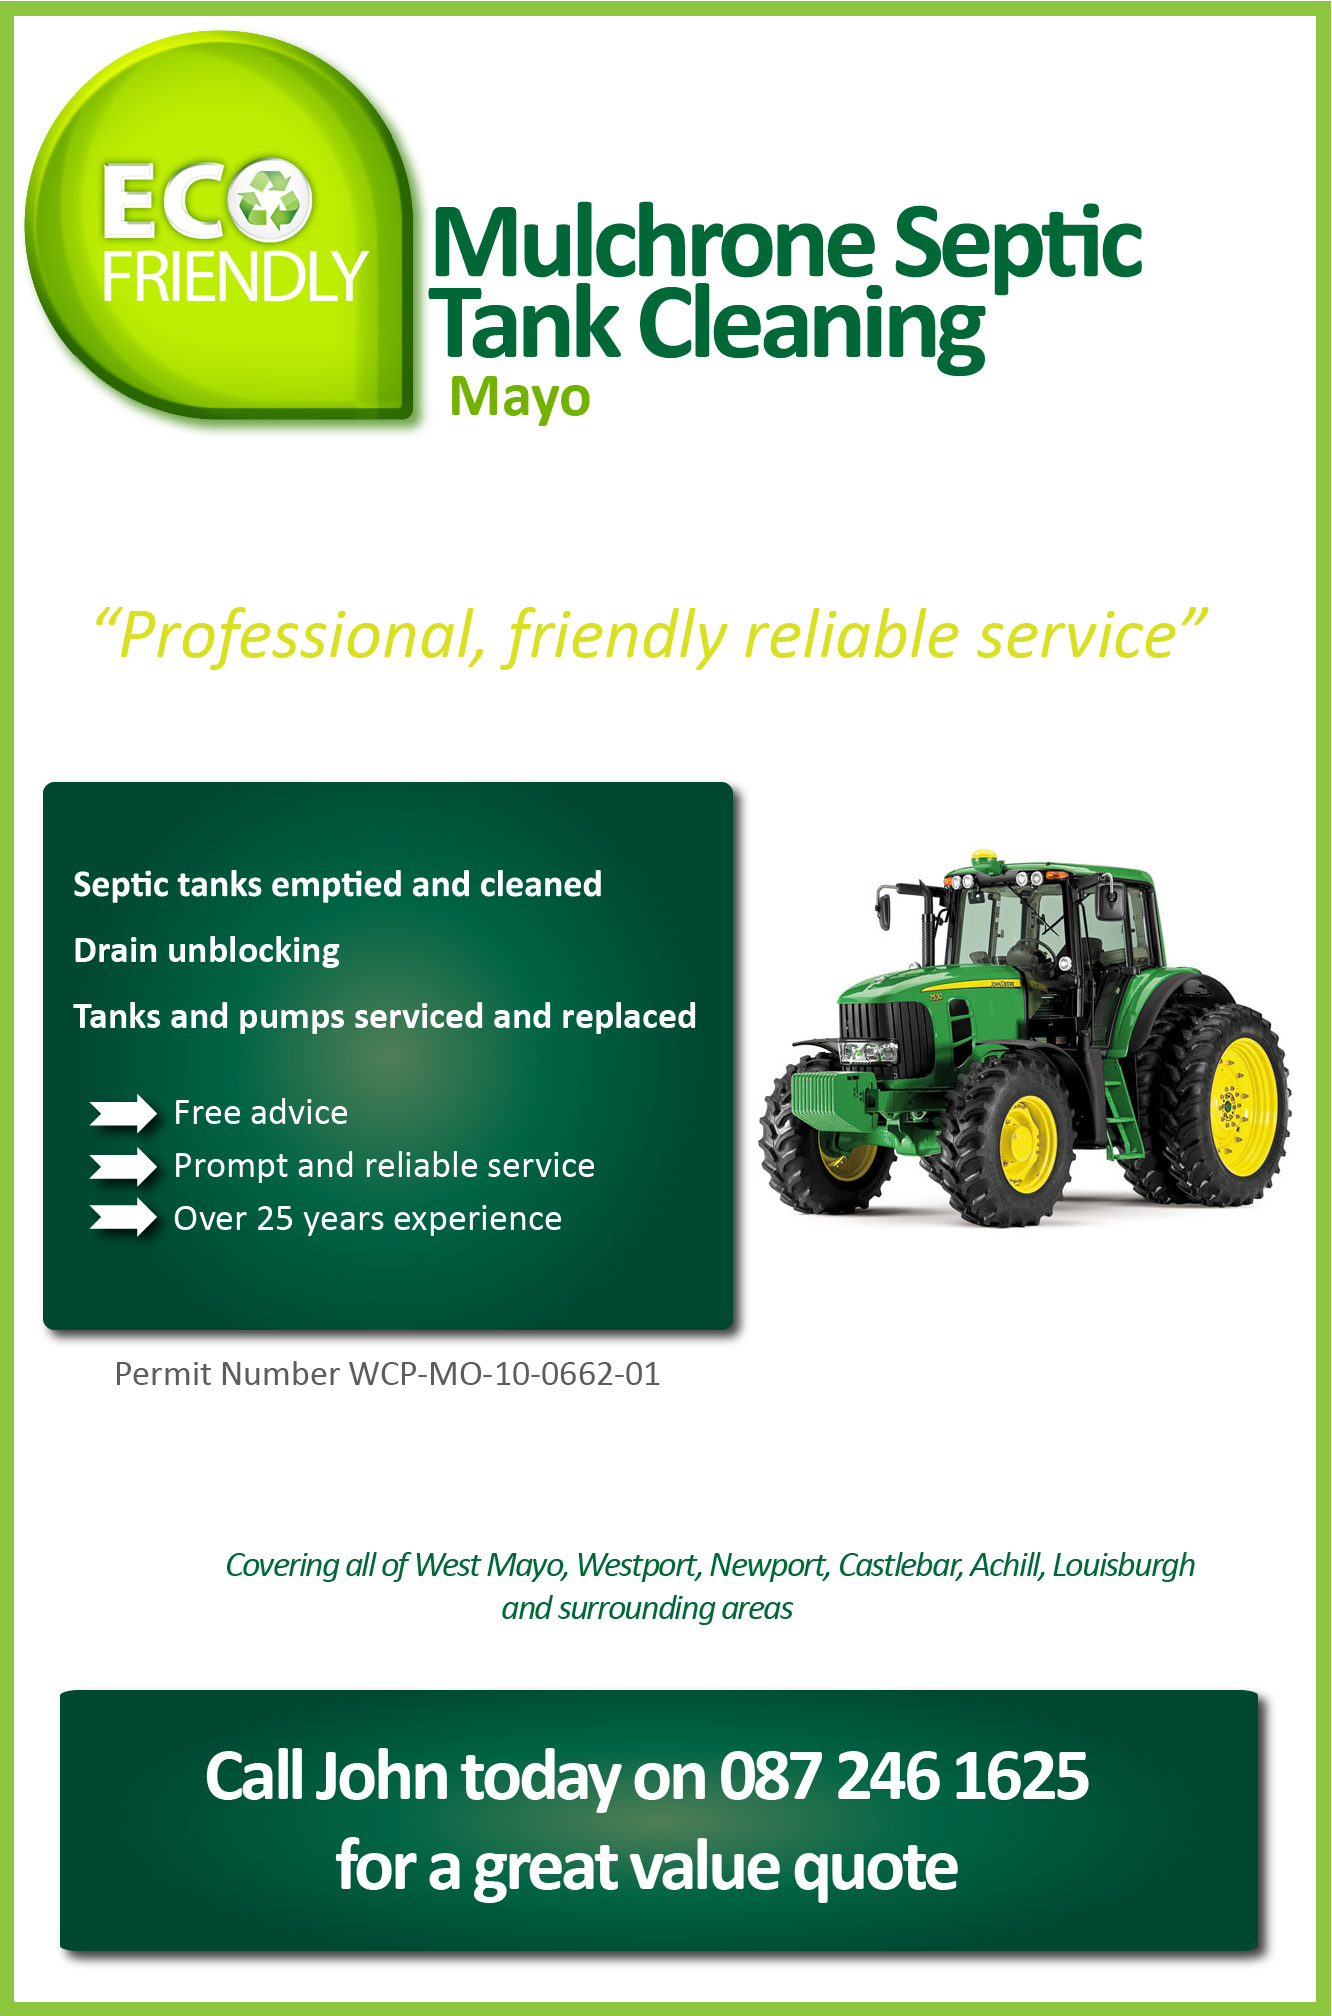 Mulchrone Septic Tank Cleaning Westport Mayo Drain Unblocking